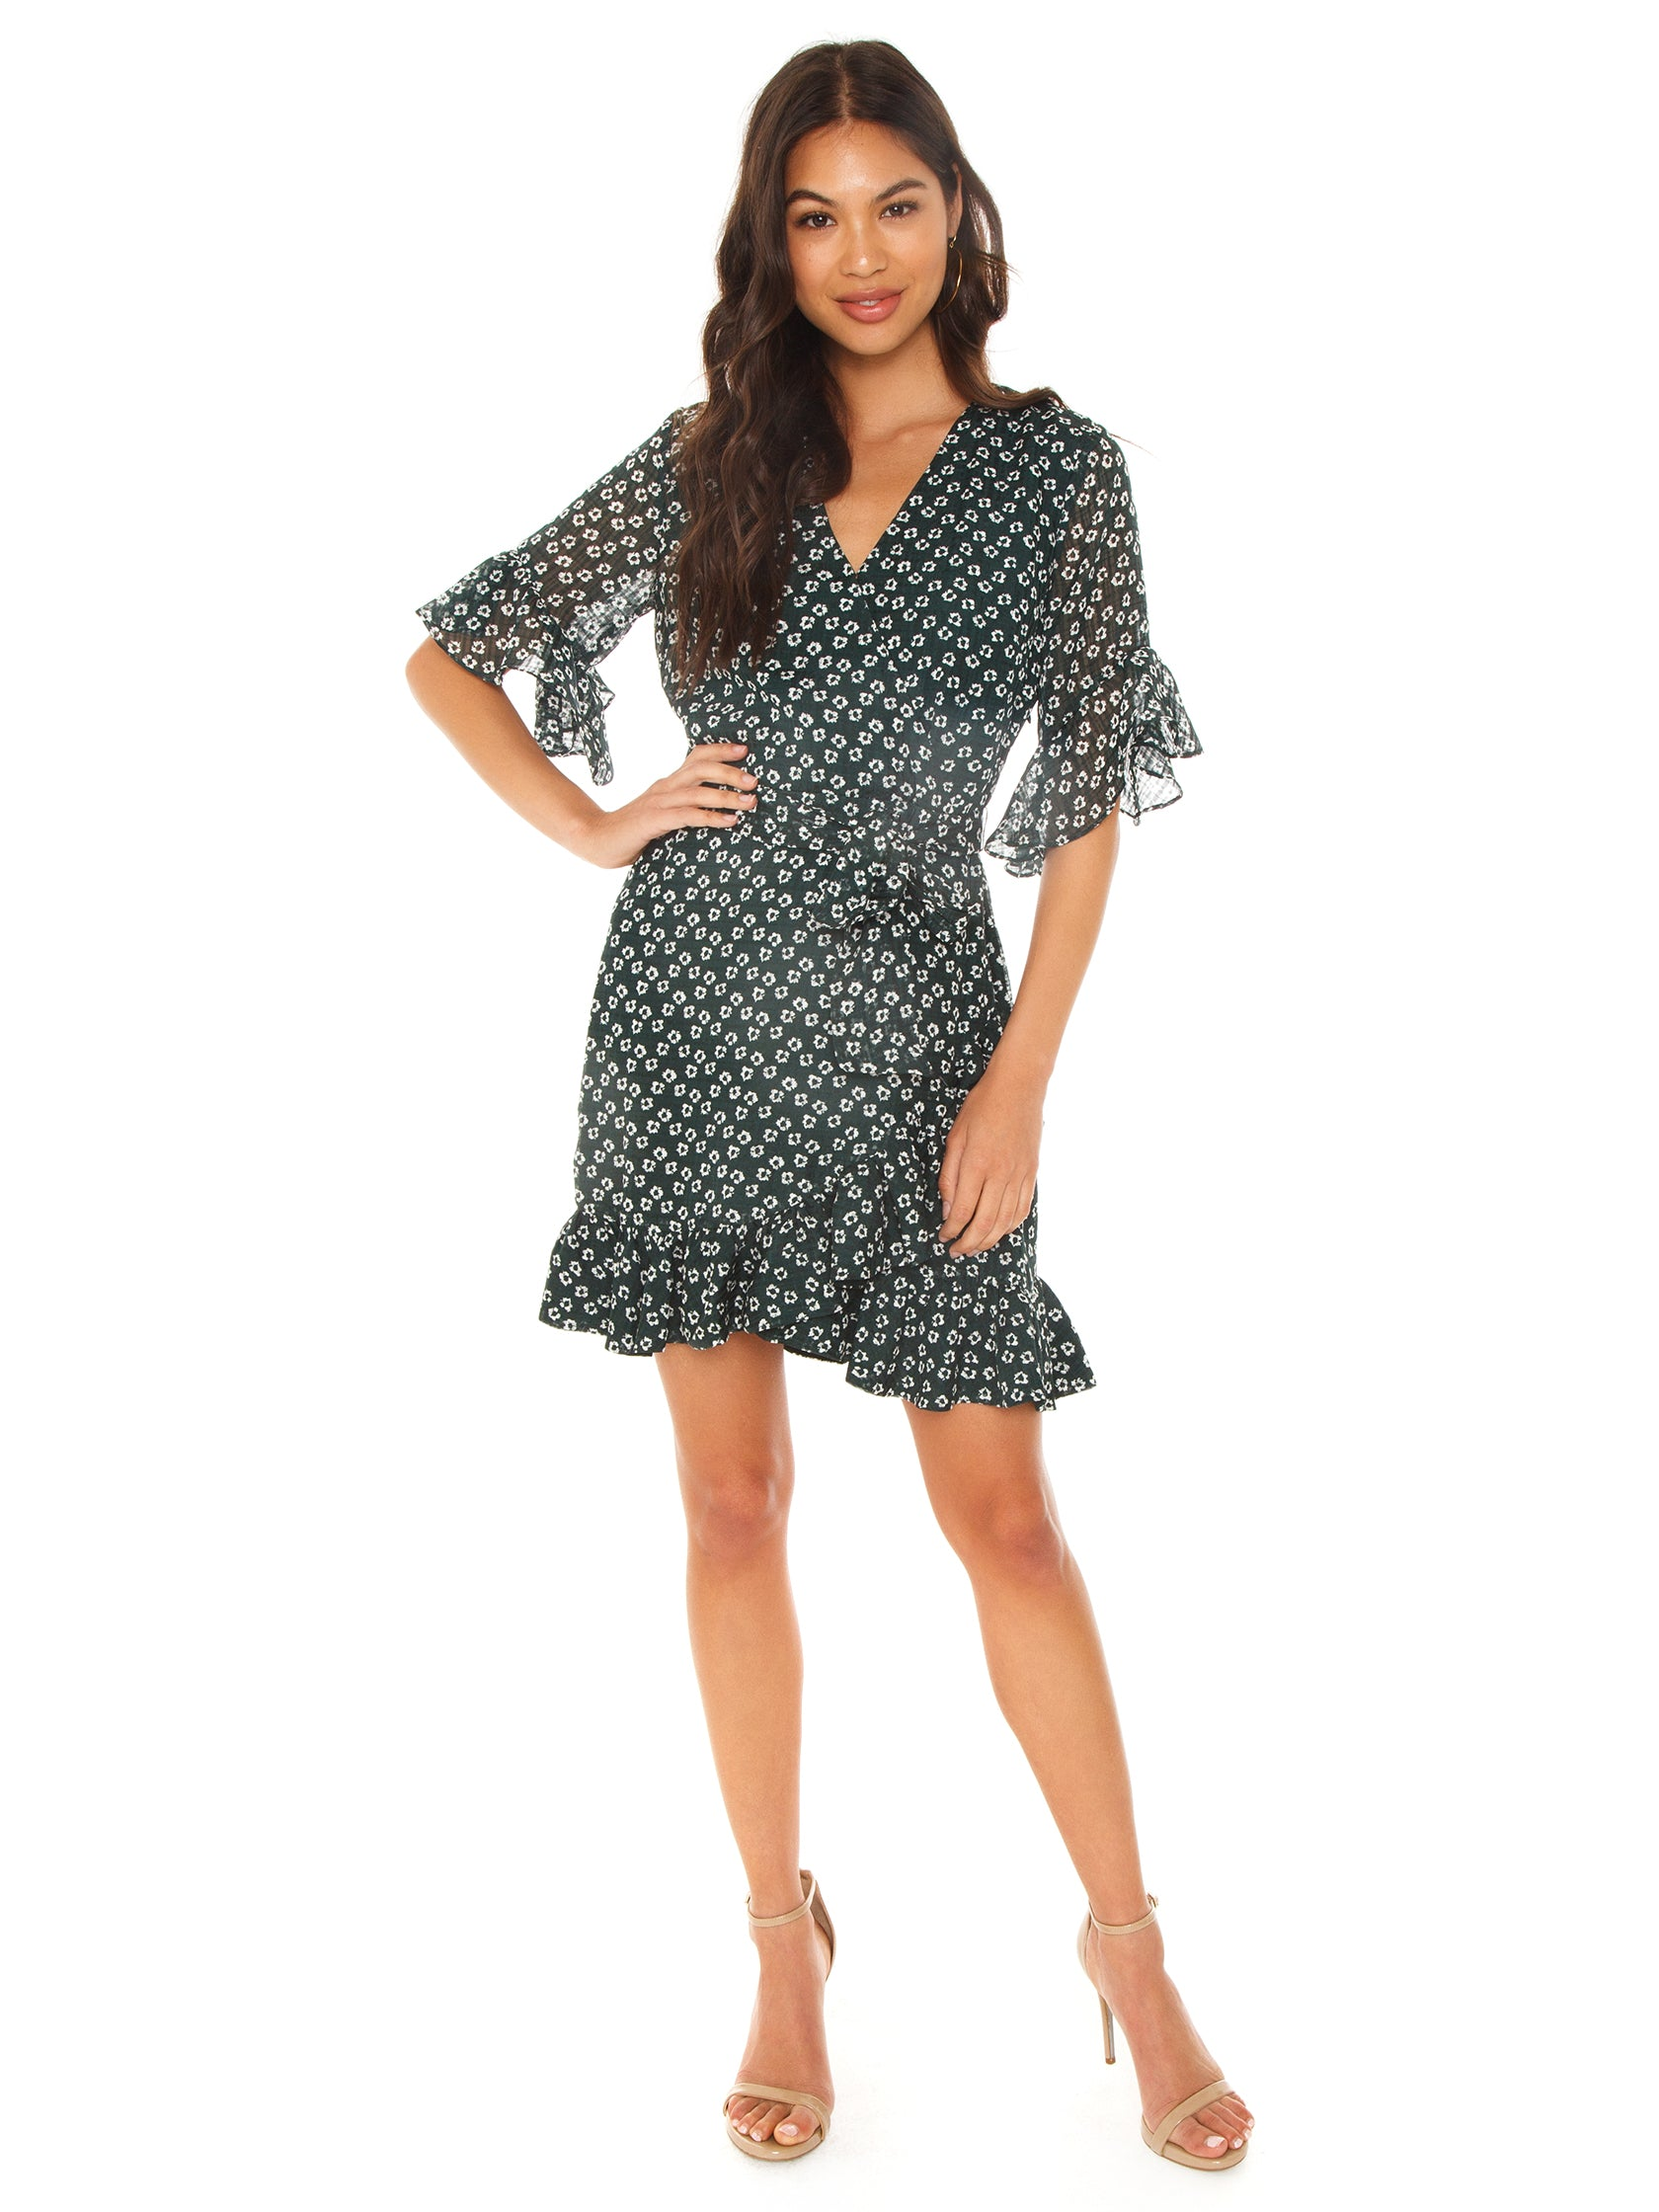 Girl outfit in a dress rental from 1.STATE called Short Sleeve Flounce Flower Etching Wrap Dress